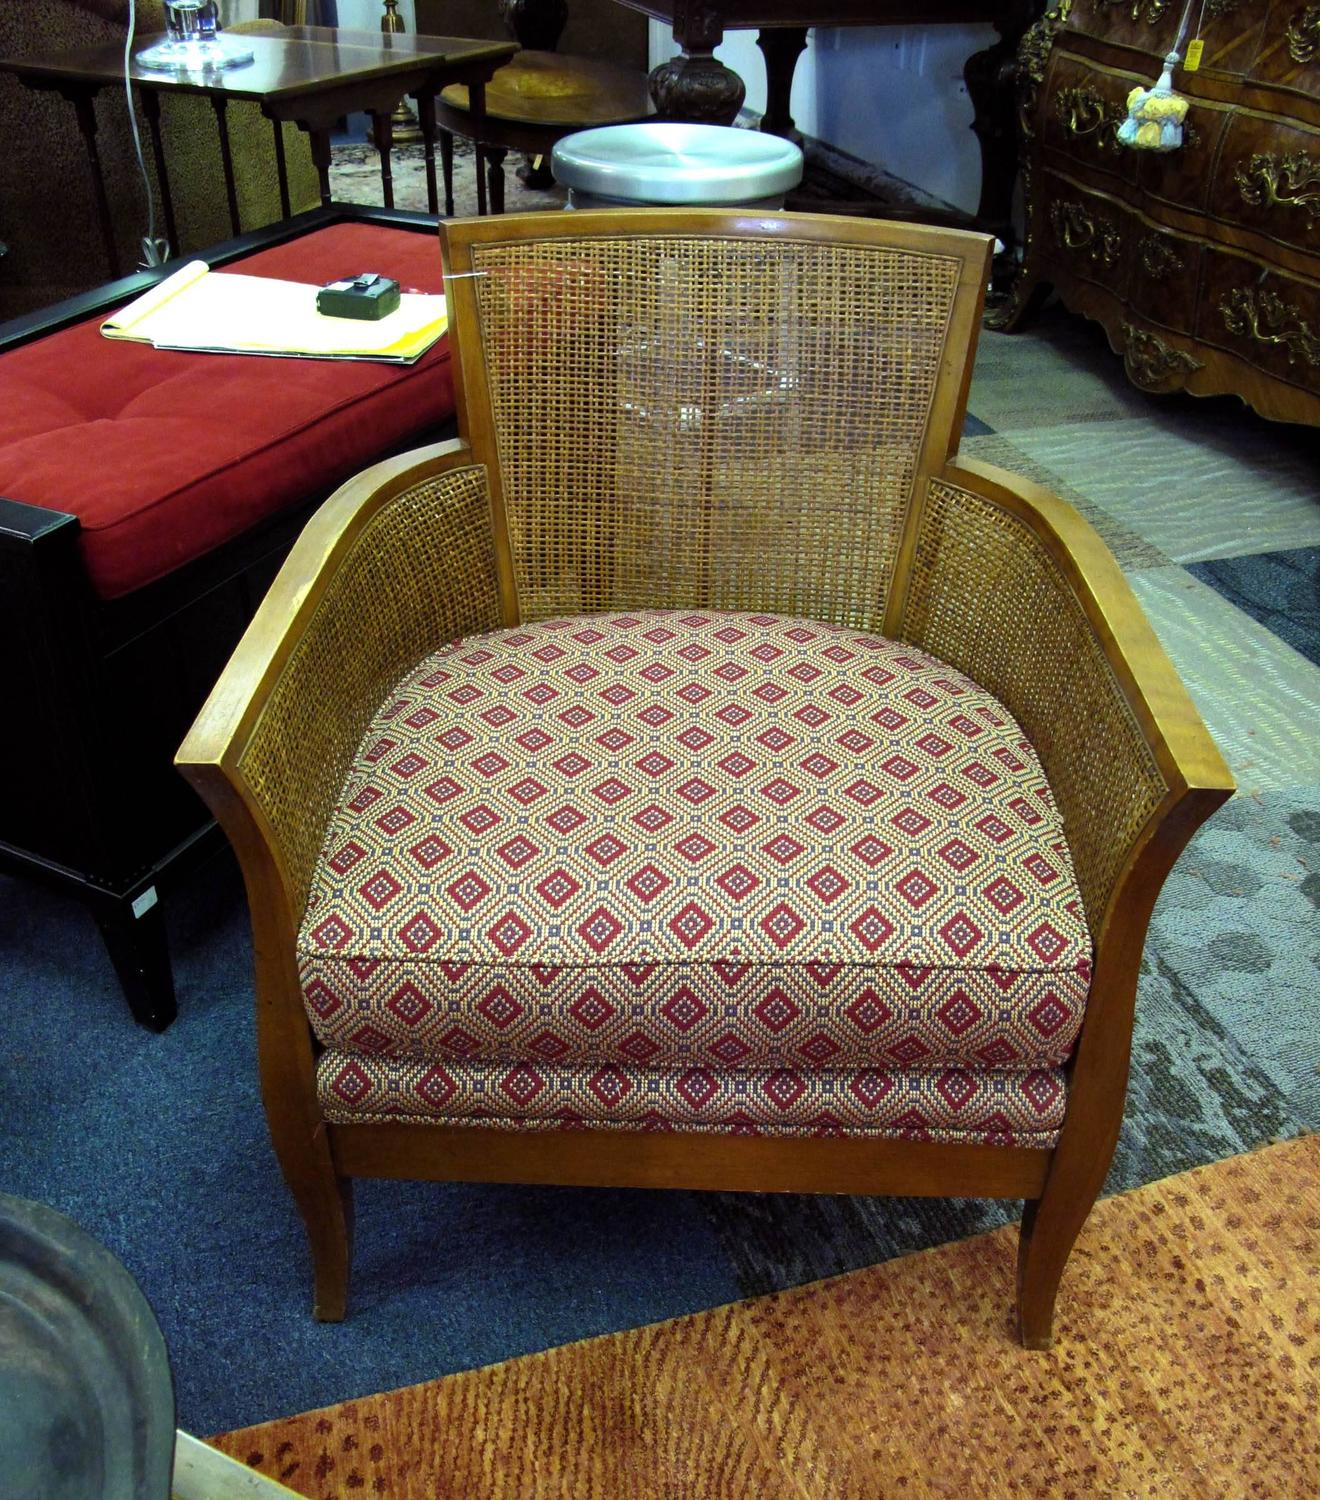 Tonir Upholstered Seat With Wicker Back Chair For Sale At